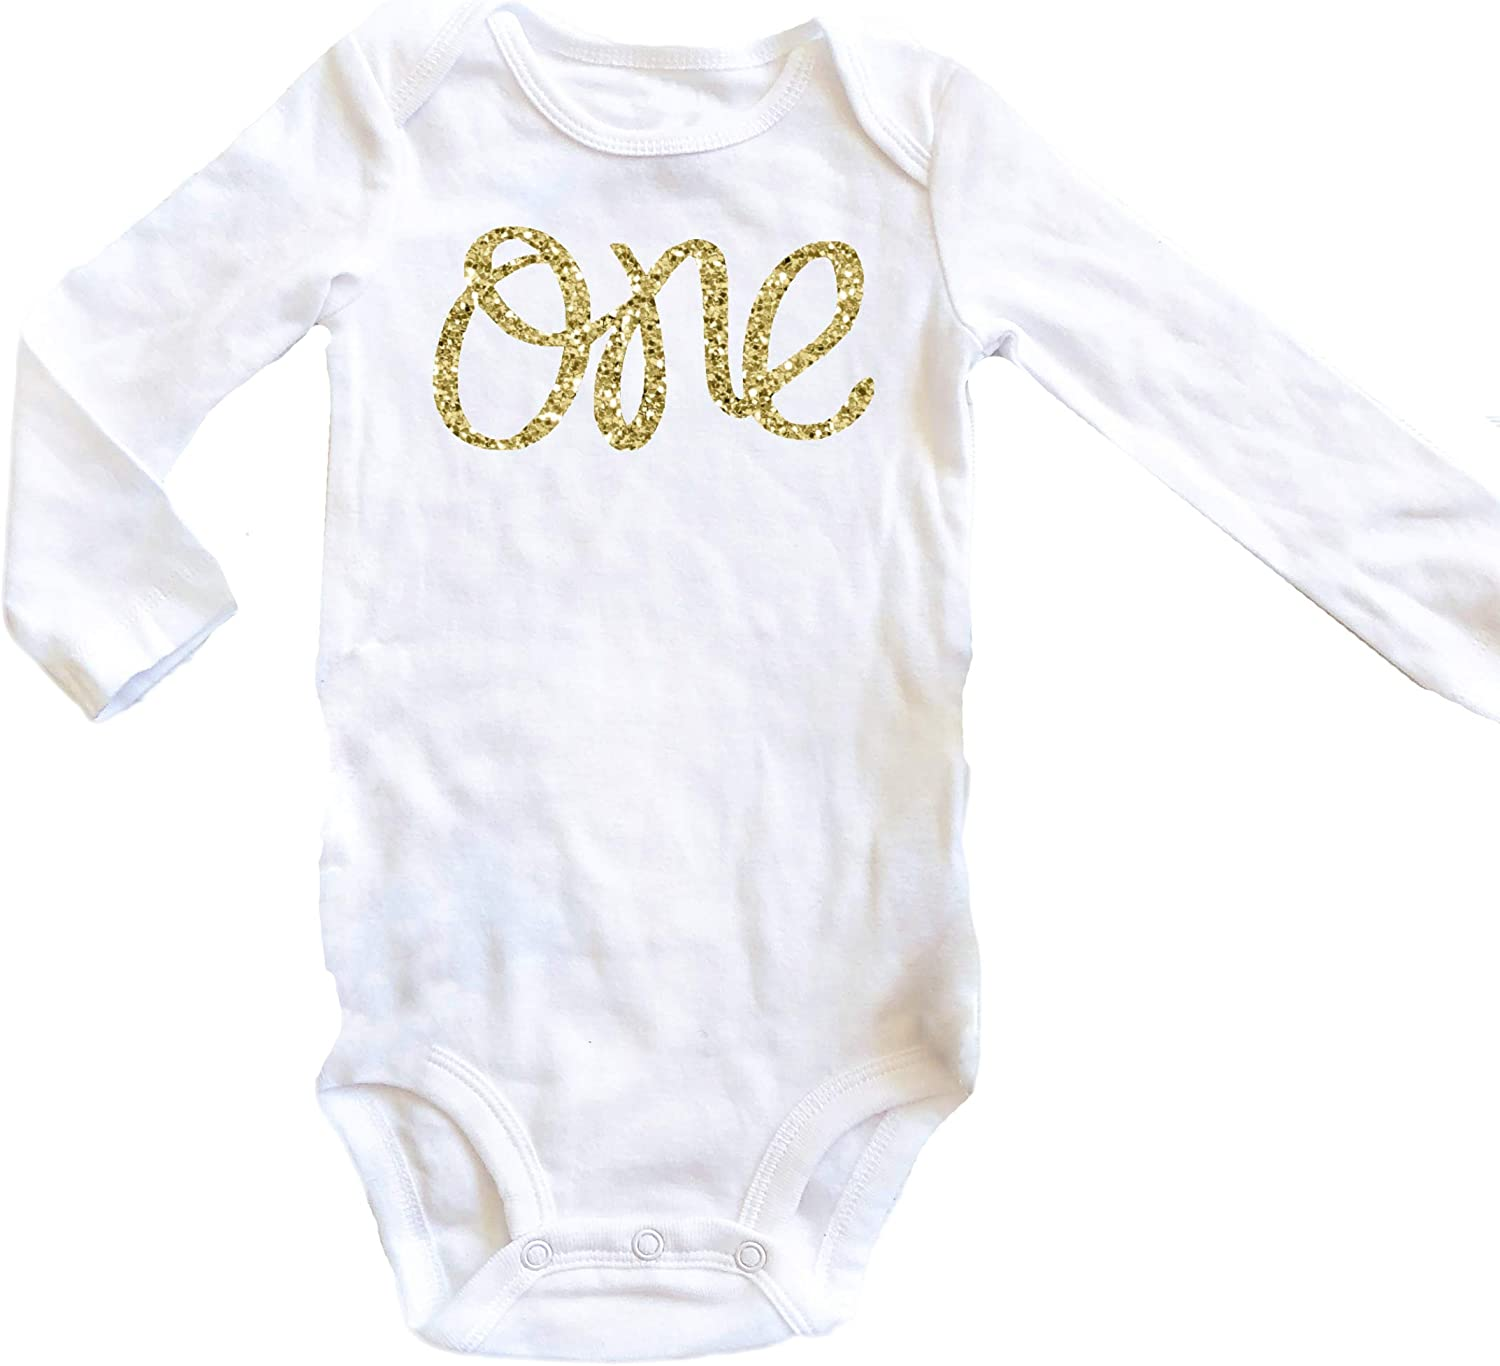 Onepiece Bodysuit gold party Photo Prop First Birthday Set Baby Girl First Birthday Outfit crown royal Bloomers and Headband Set